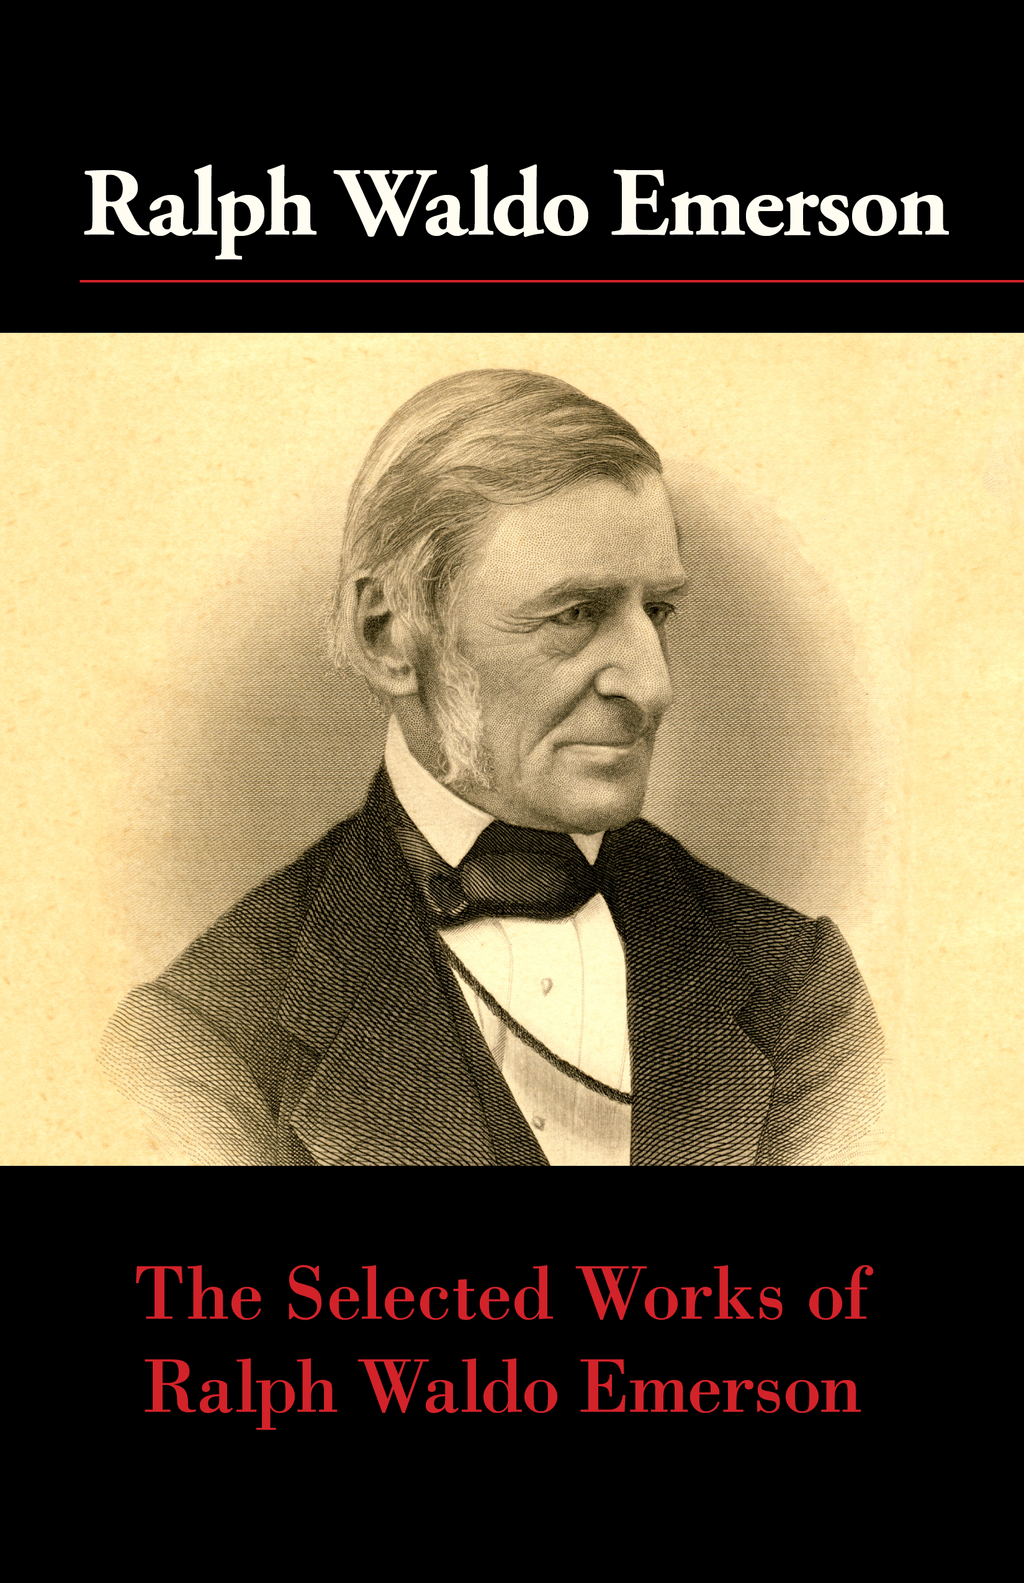 The Selected Works of Ralph Waldo Emerson By: Ralph Waldo Emerson